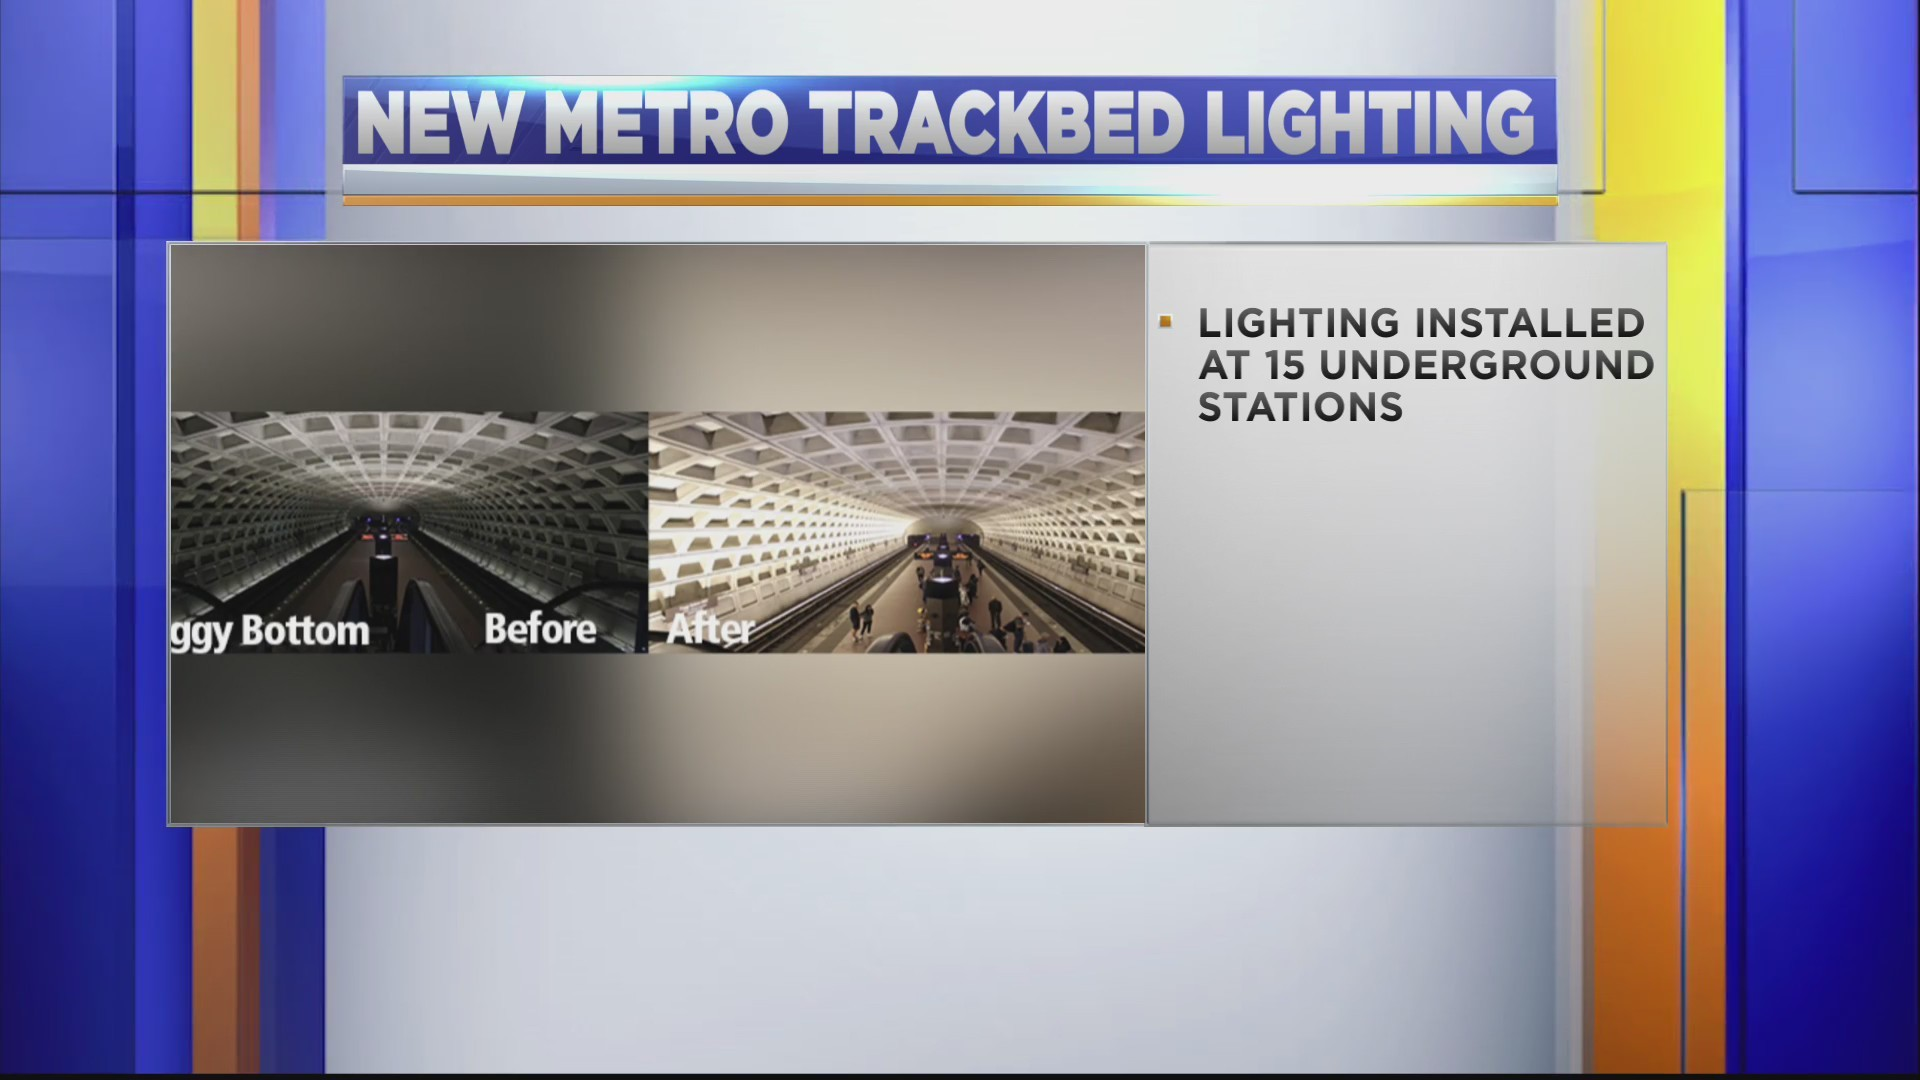 Metro_lighting_0_20181226235908